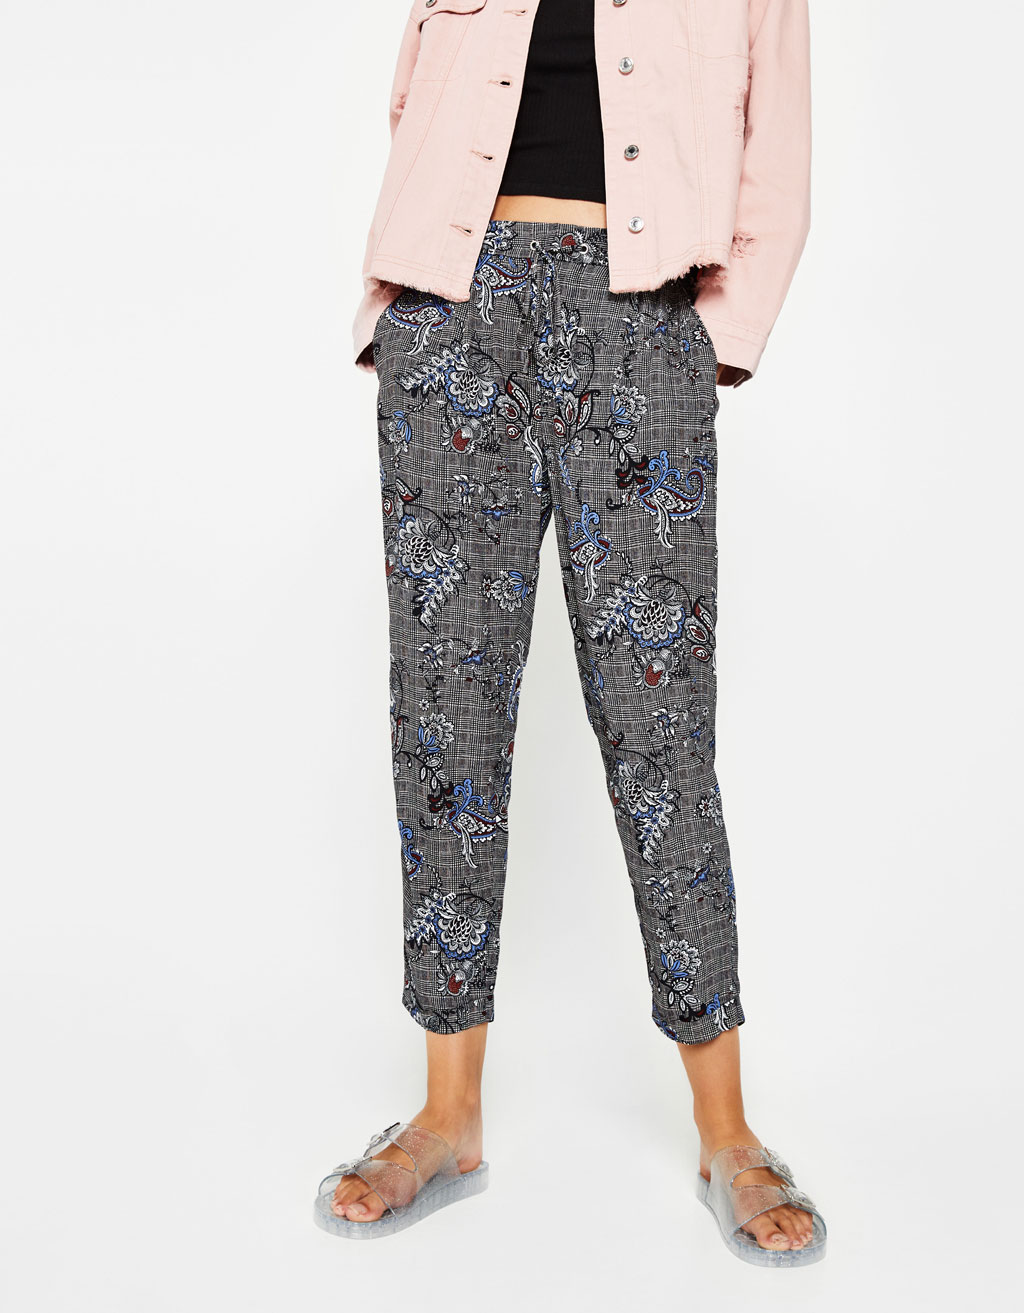 Joggingbroek met ruitenprint all-over